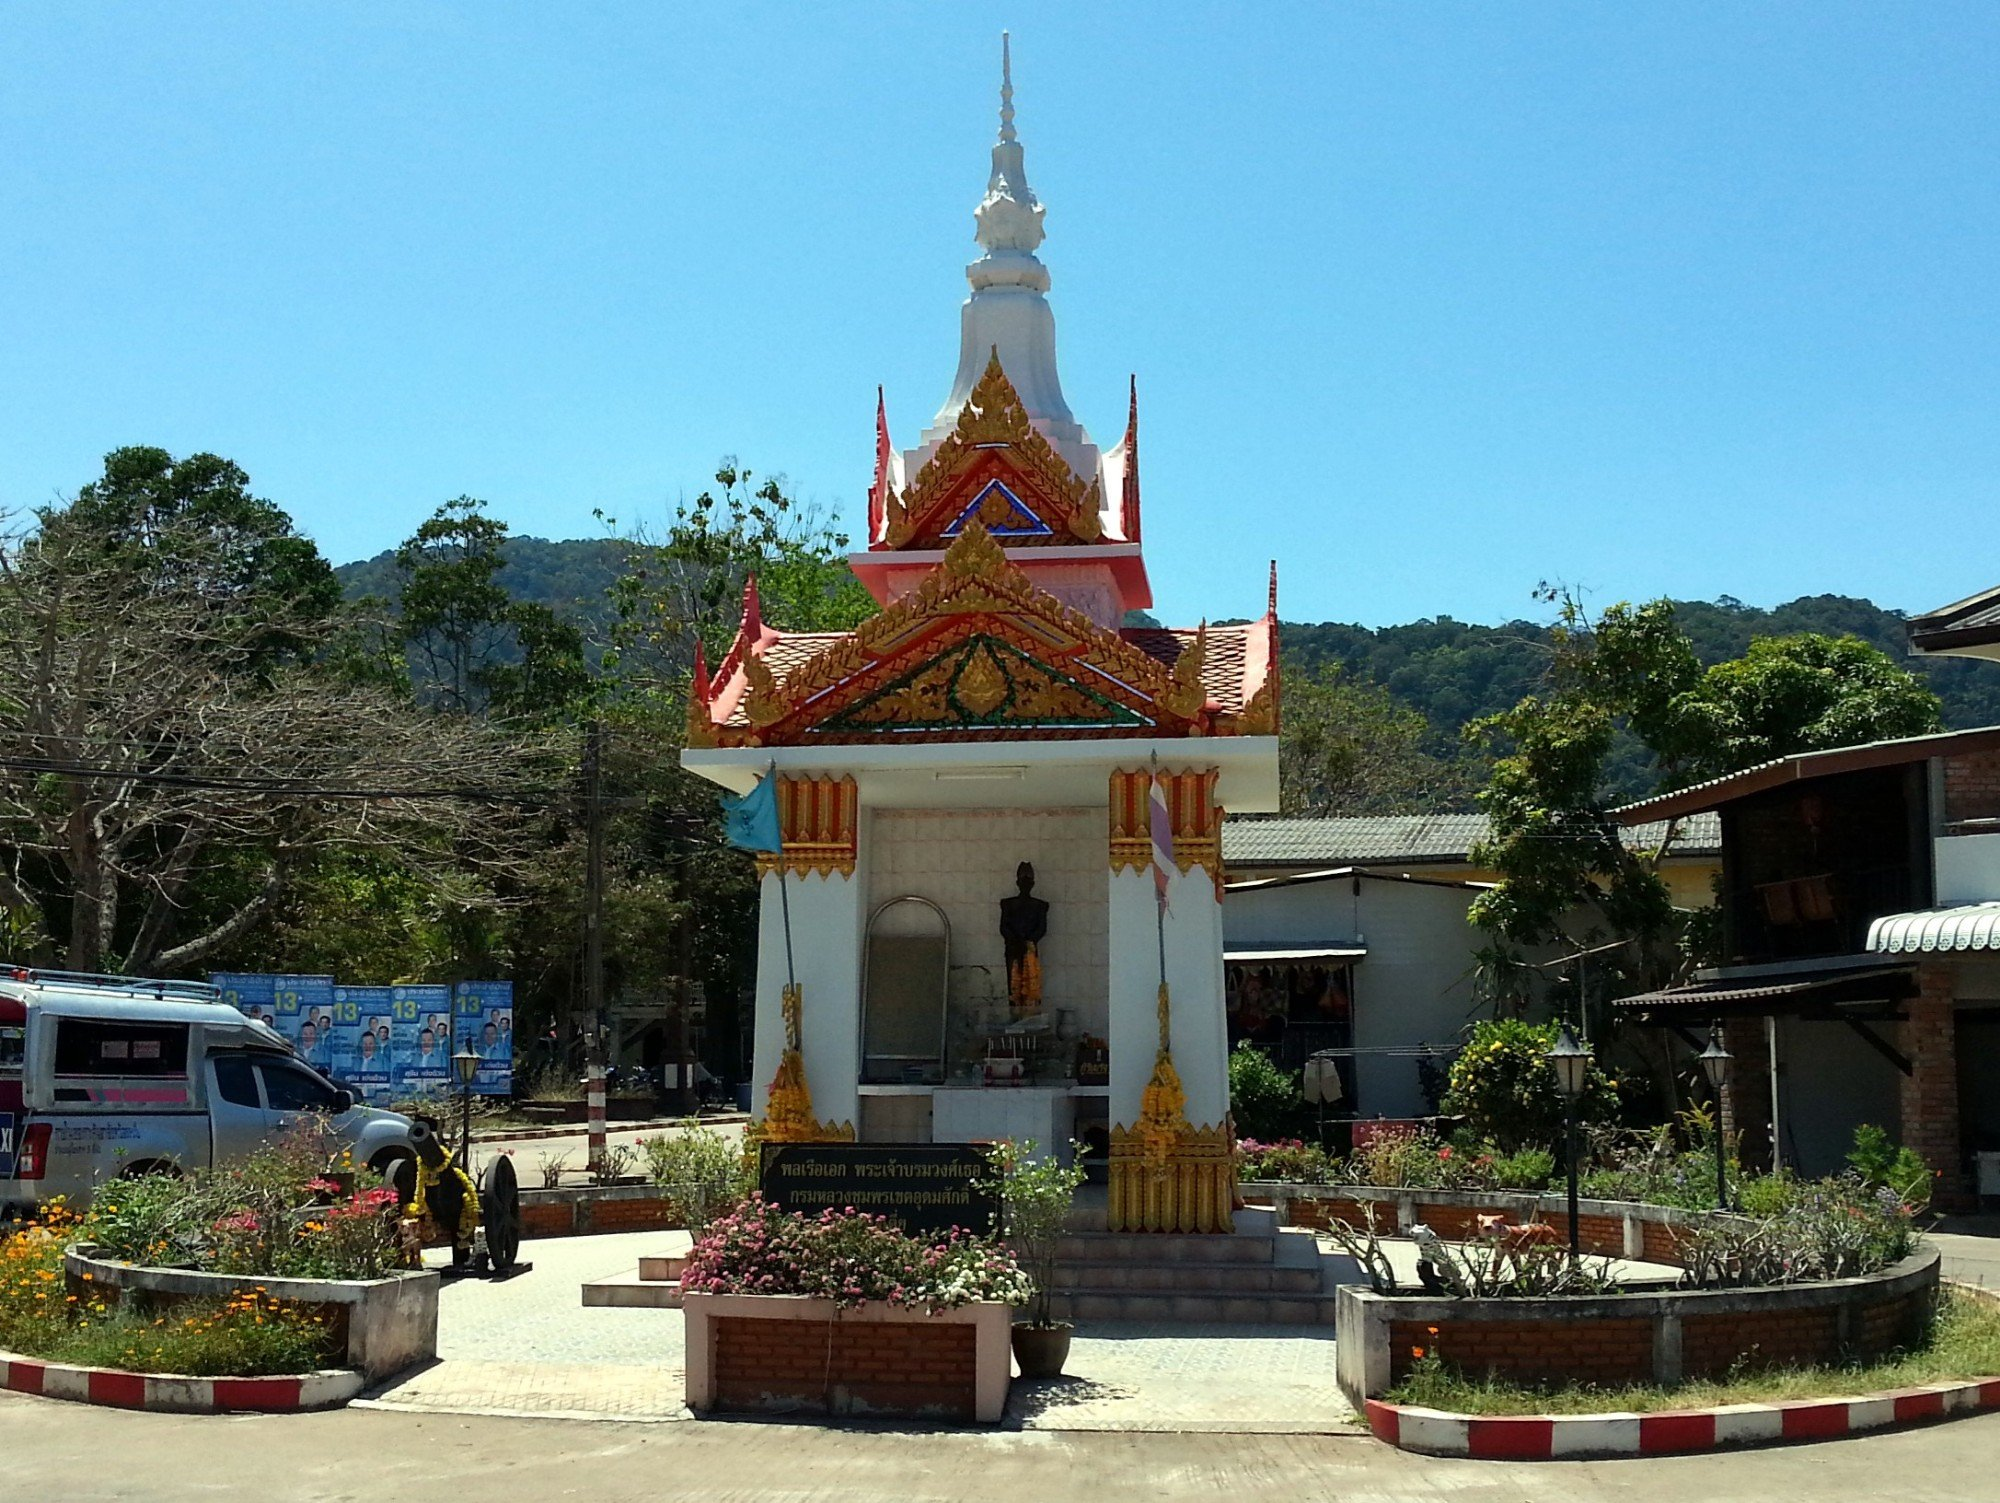 Roundabout shrine in Koh Lanta Old Town